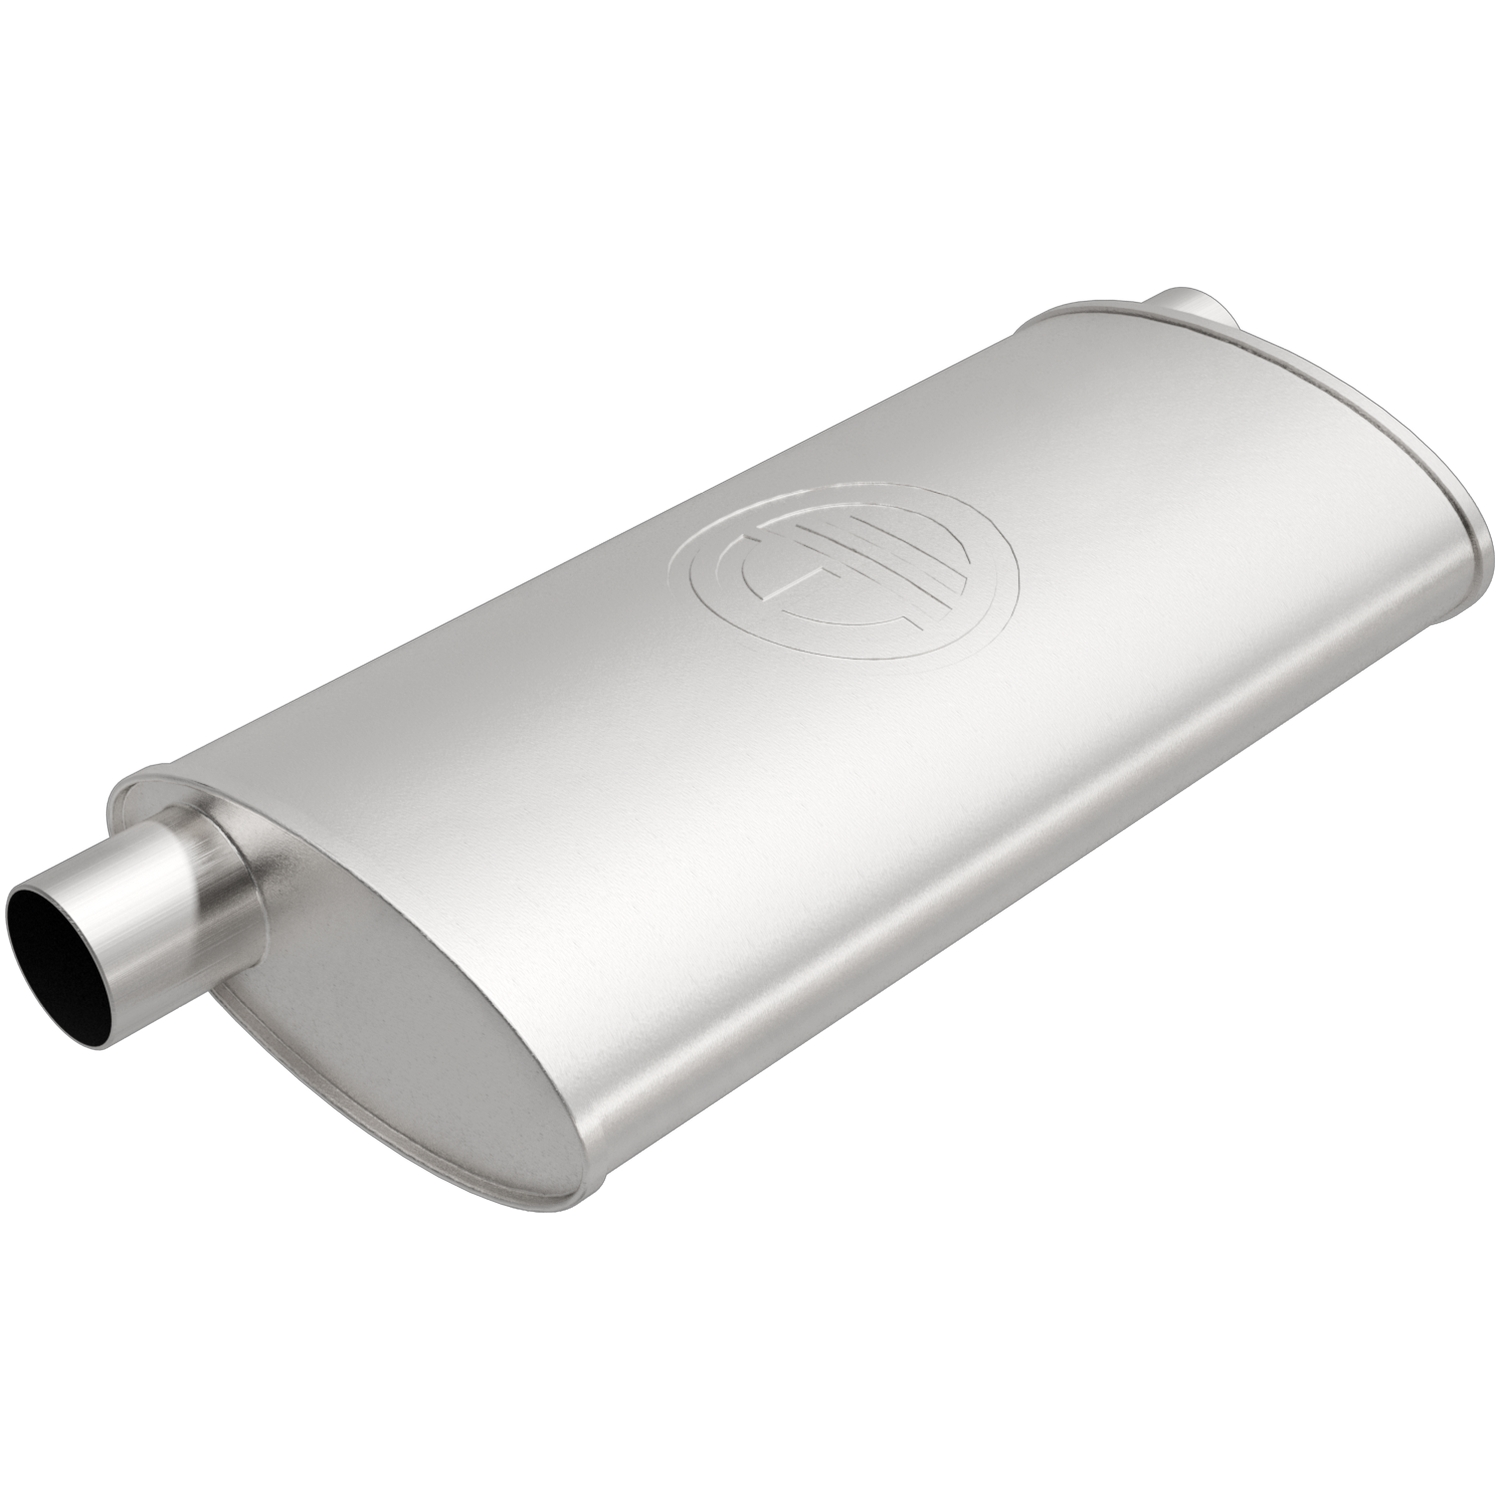 100-1757 Bosal USA Exhaust Muffler Aluminized Steel Case